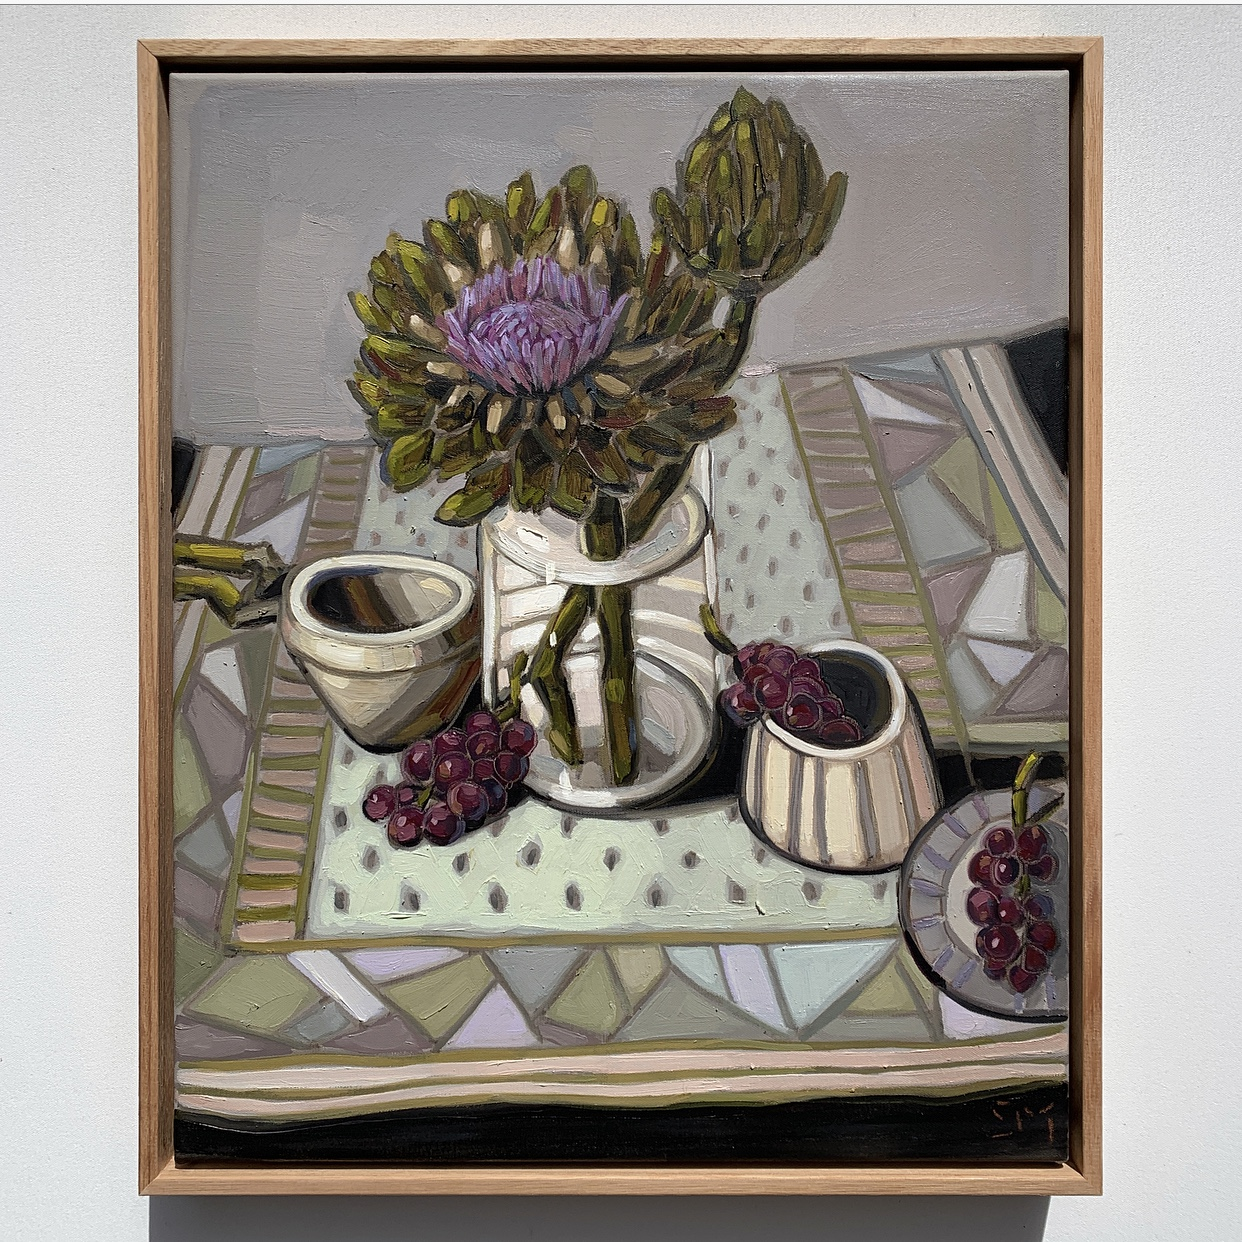 sam michelle 'artichokes & grapes' 48x40